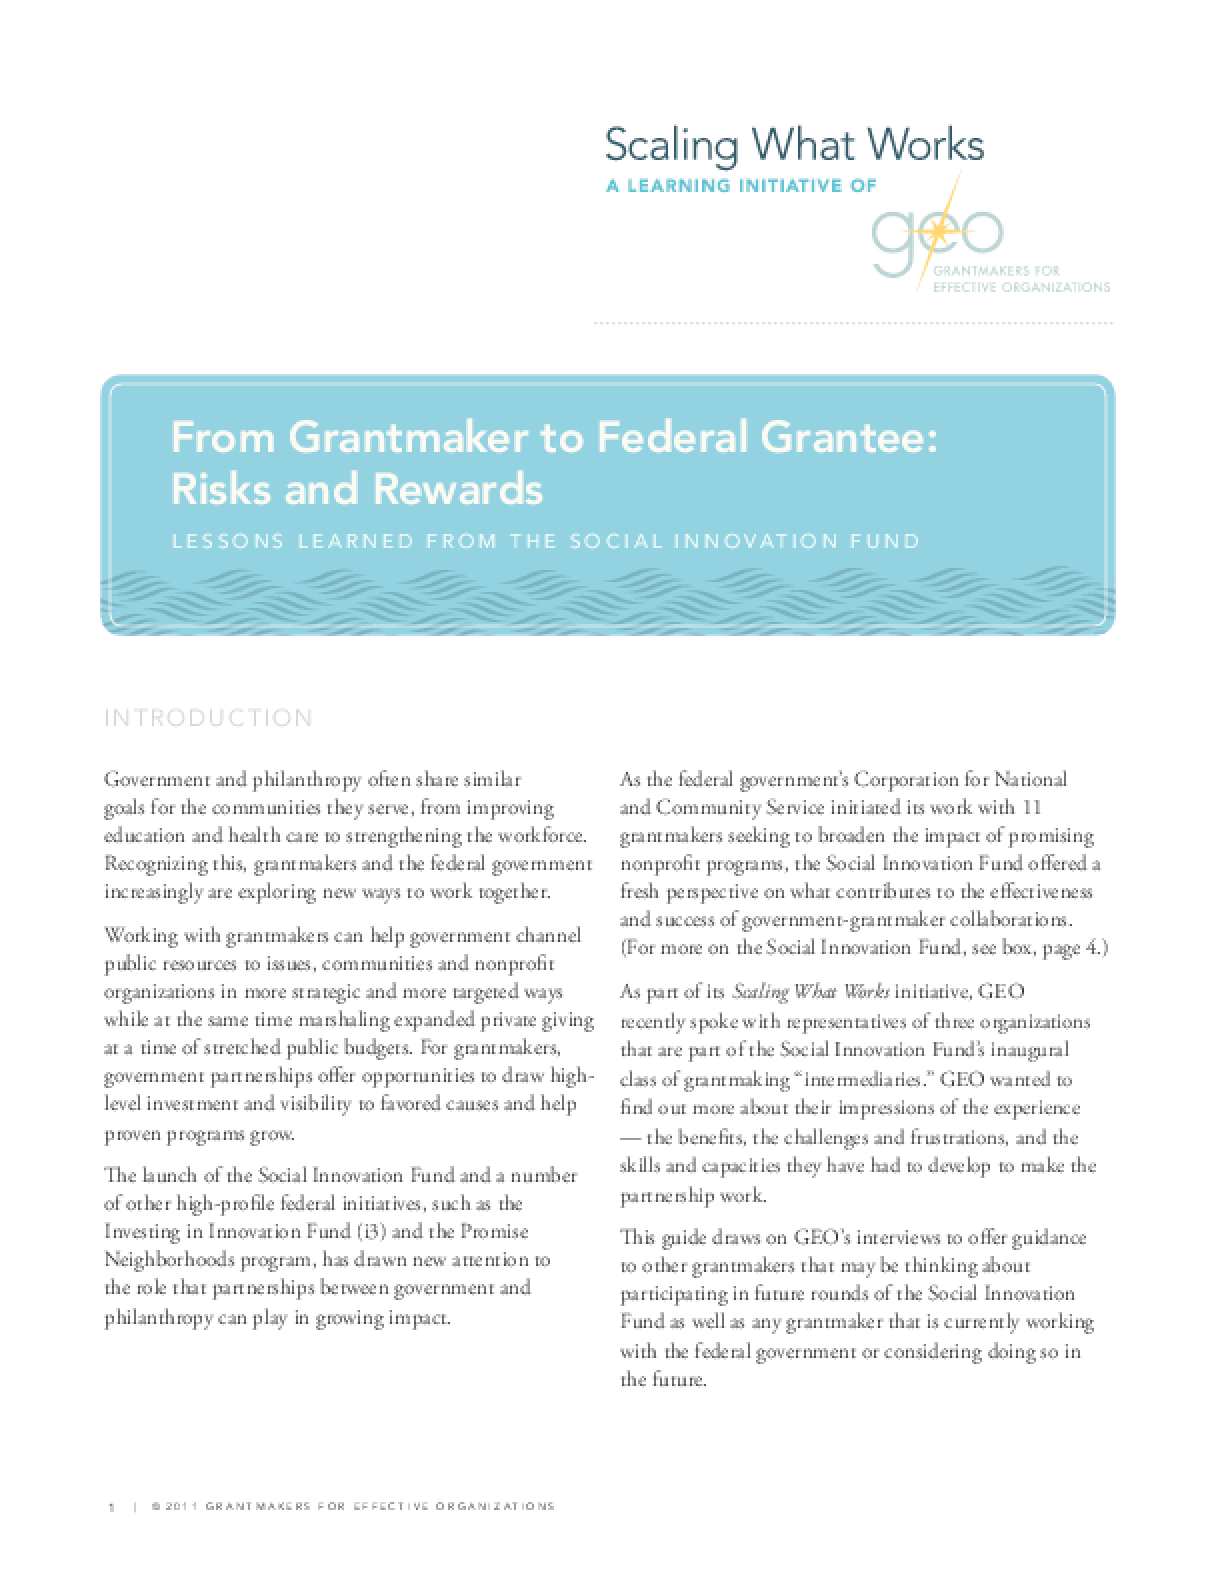 From Grantmaker to Federal Grantee: Risks and Rewards: Lessons Learned From the Social Innovation Fund